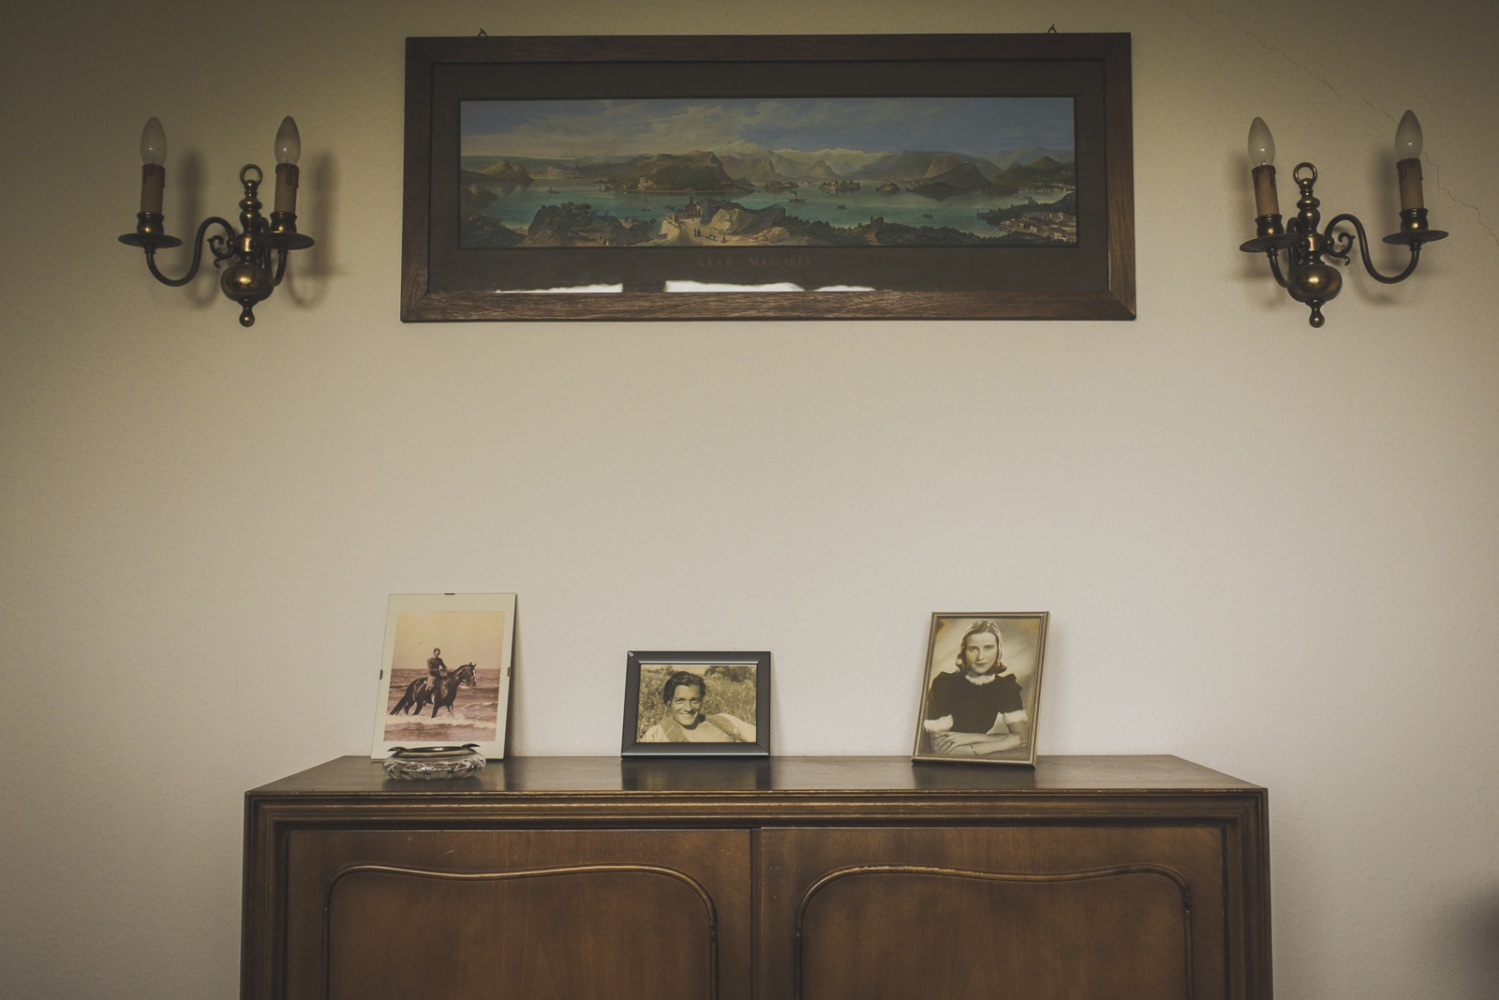 'Family photographs'. Family photographs in Helga's living room. The picture on the right shows Helga as a 27 year old woman, the pictures show her late husband. Neuss, GERMANY, May 29, 2015.